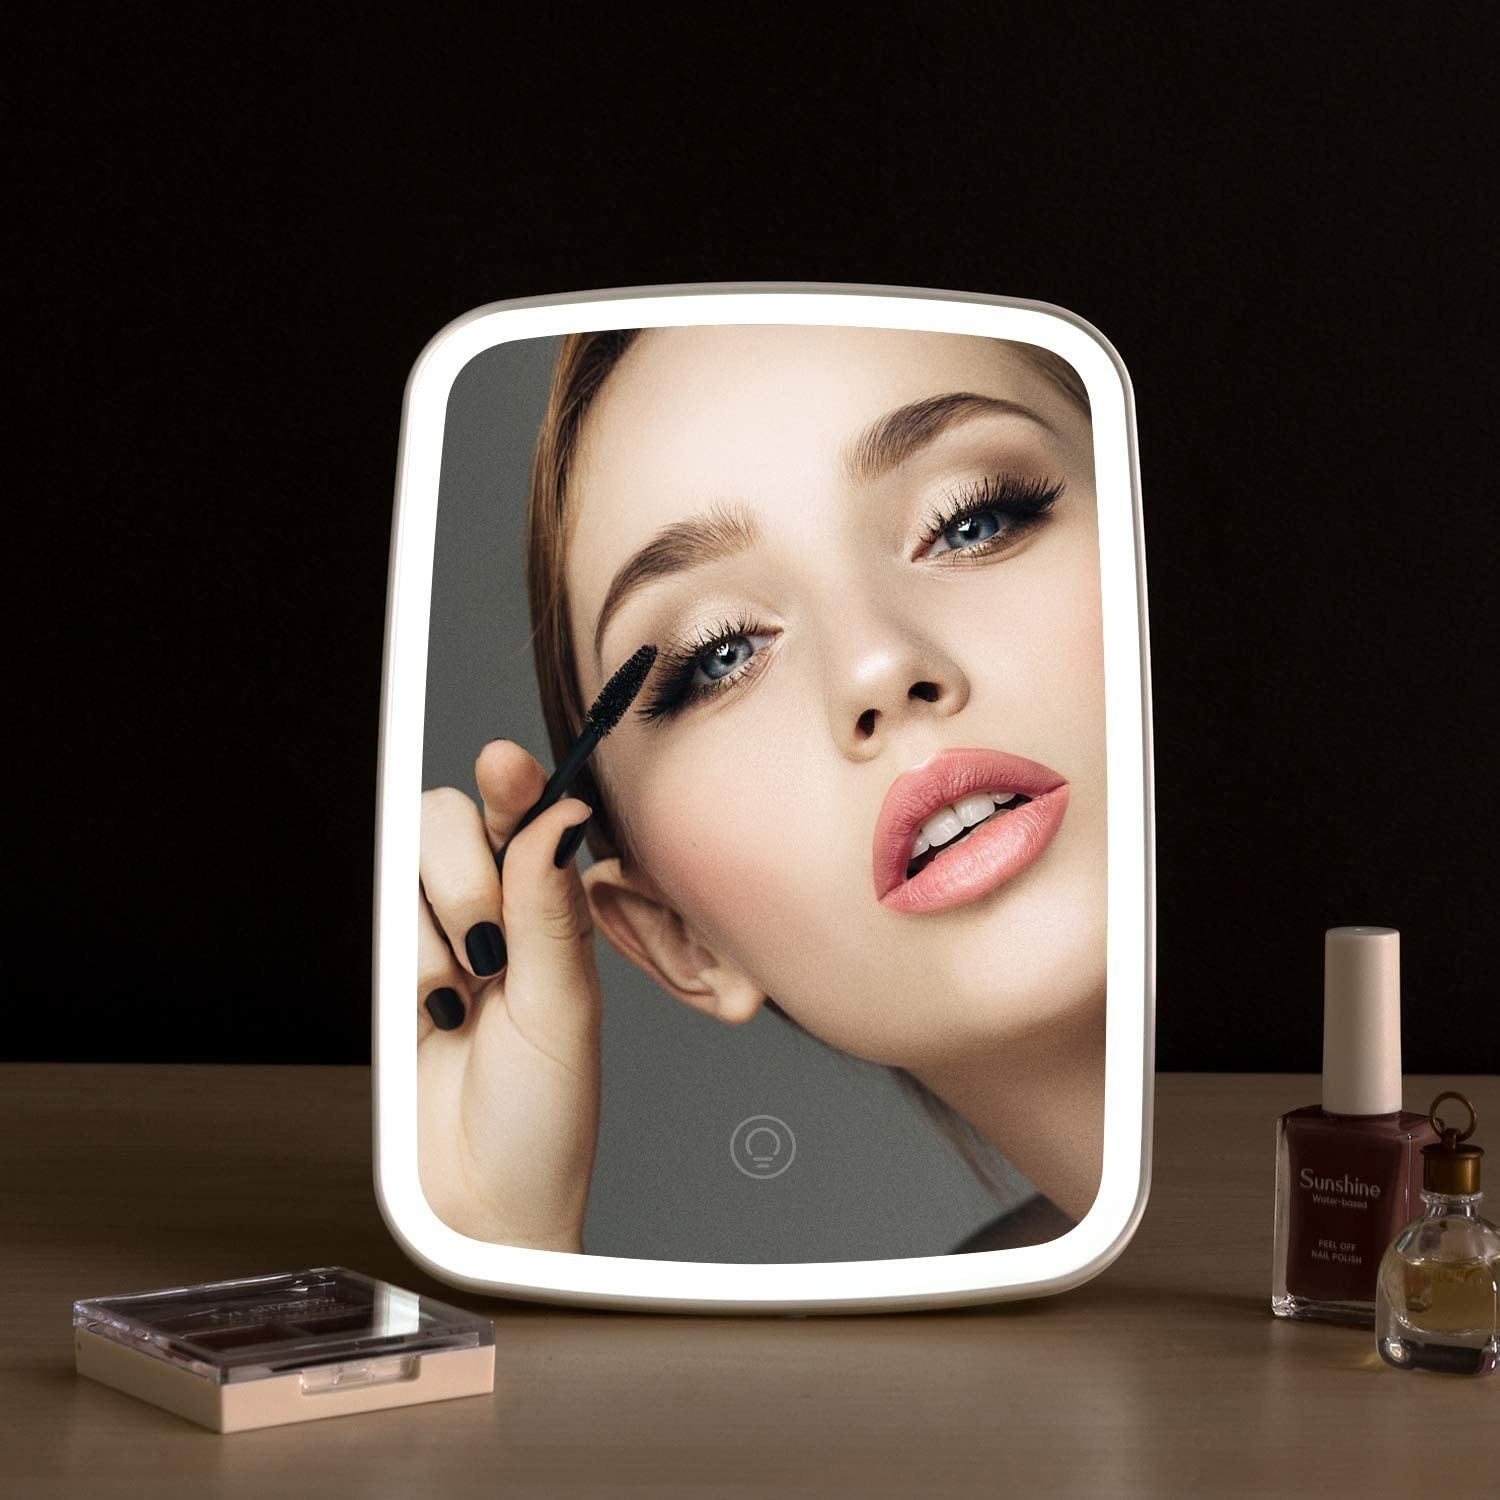 A person applying mascara in the lit-up vanity mirror